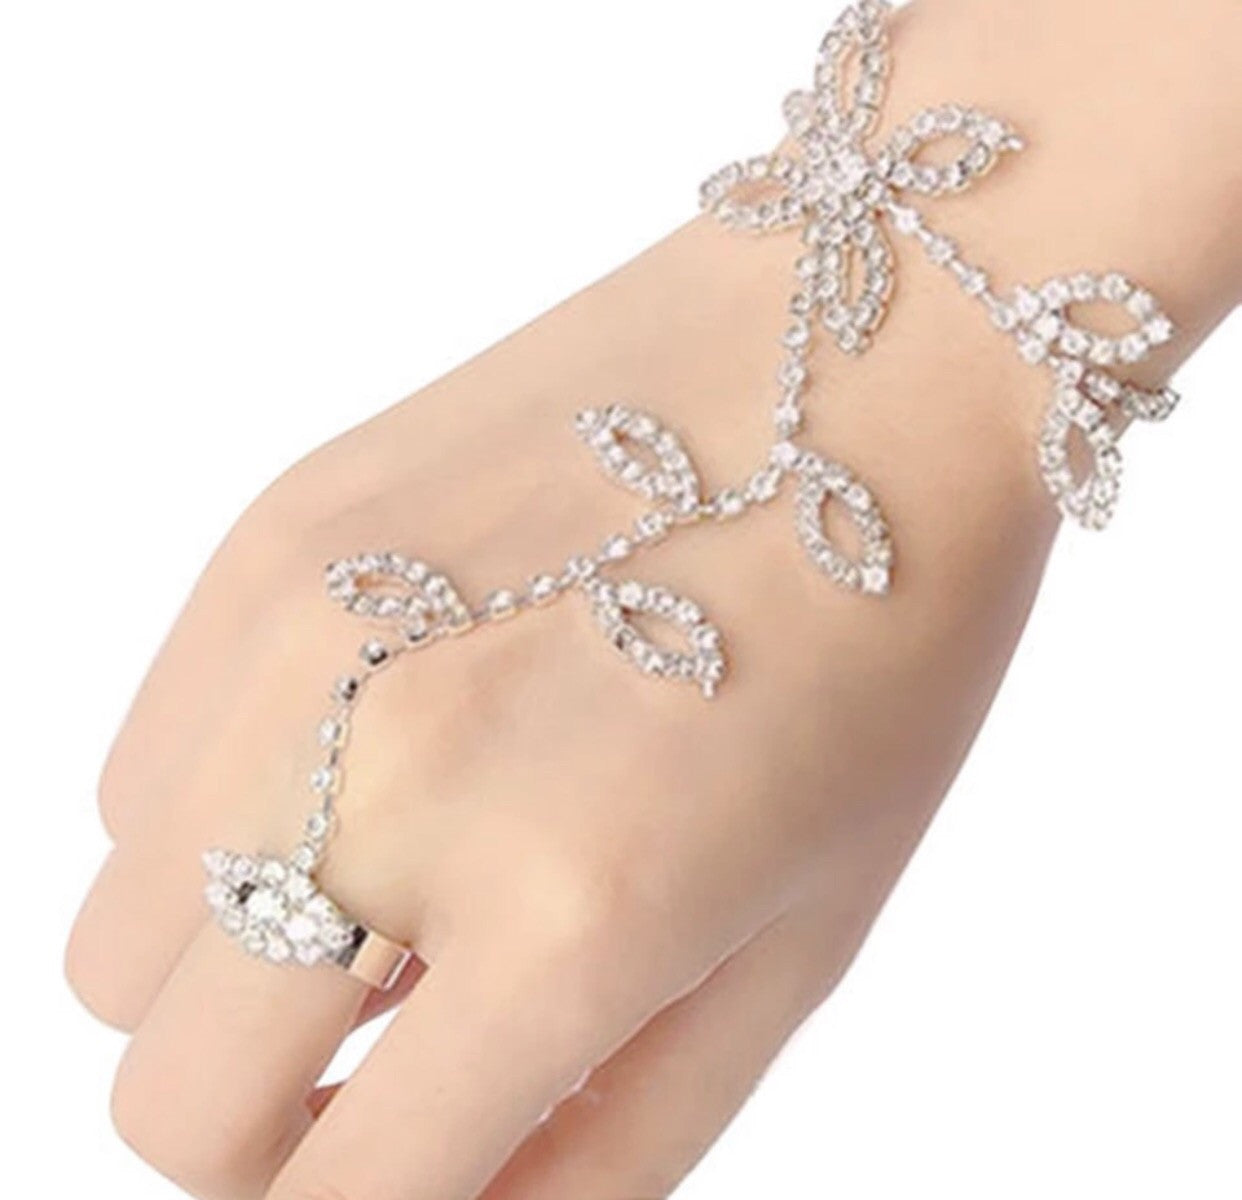 Classy and Fabulous bracelet with ring attached - Classy Pink Boutique